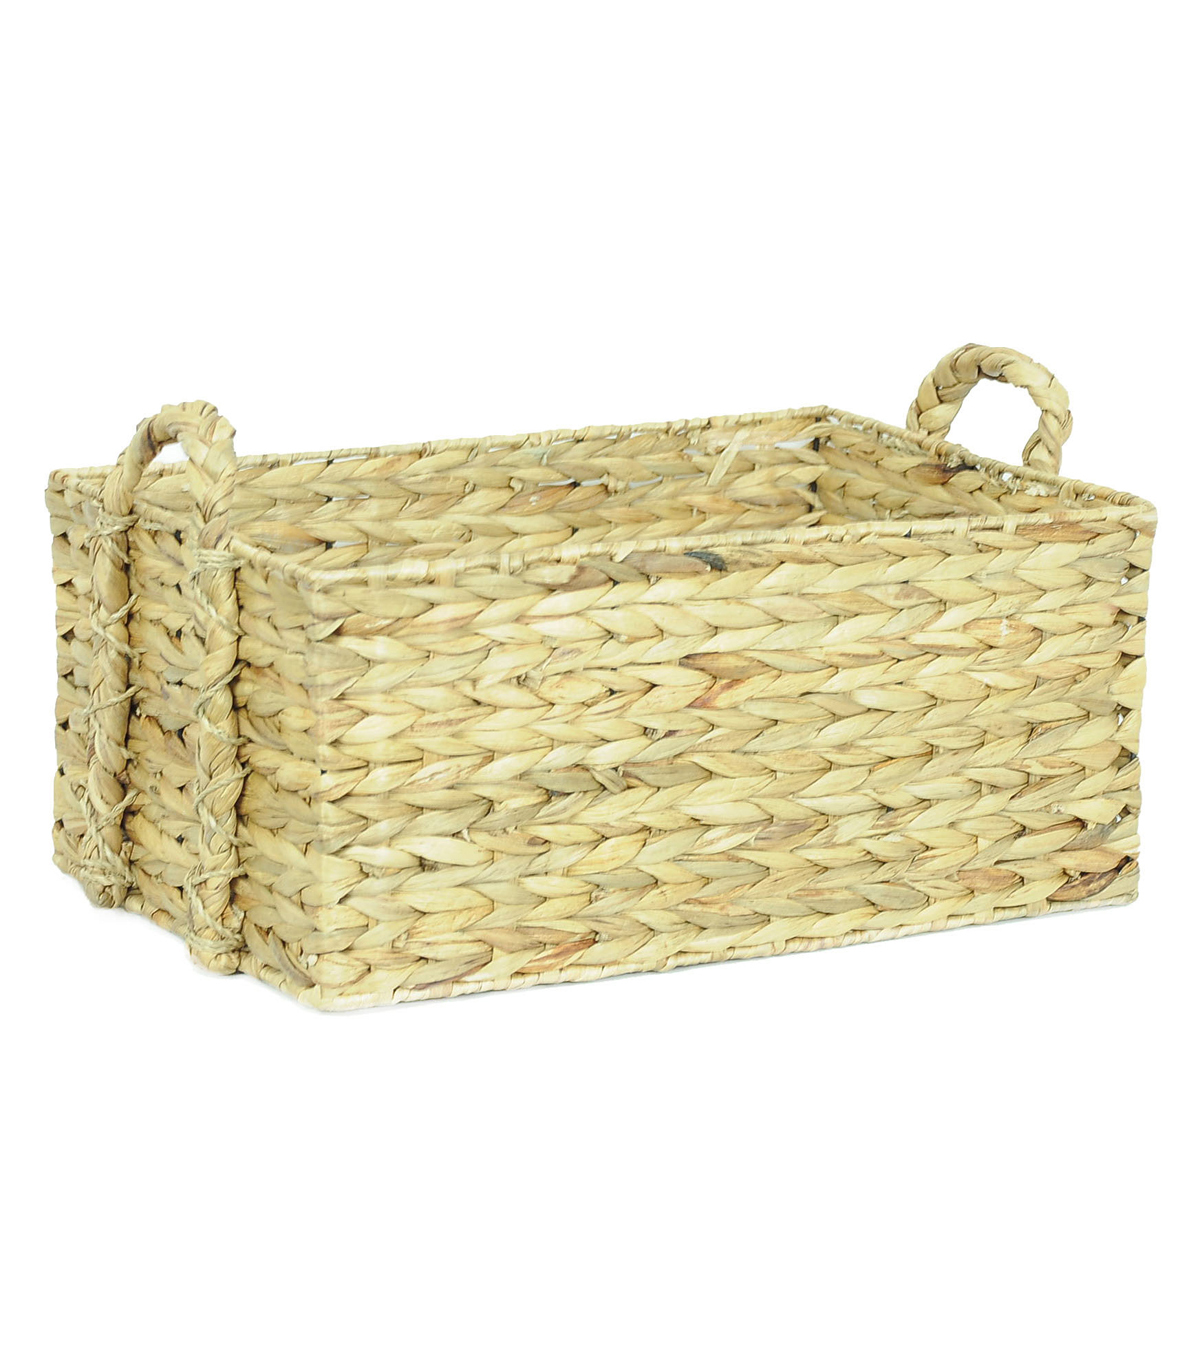 Organizing Essentials Cornhusk Woven Tray with Handles